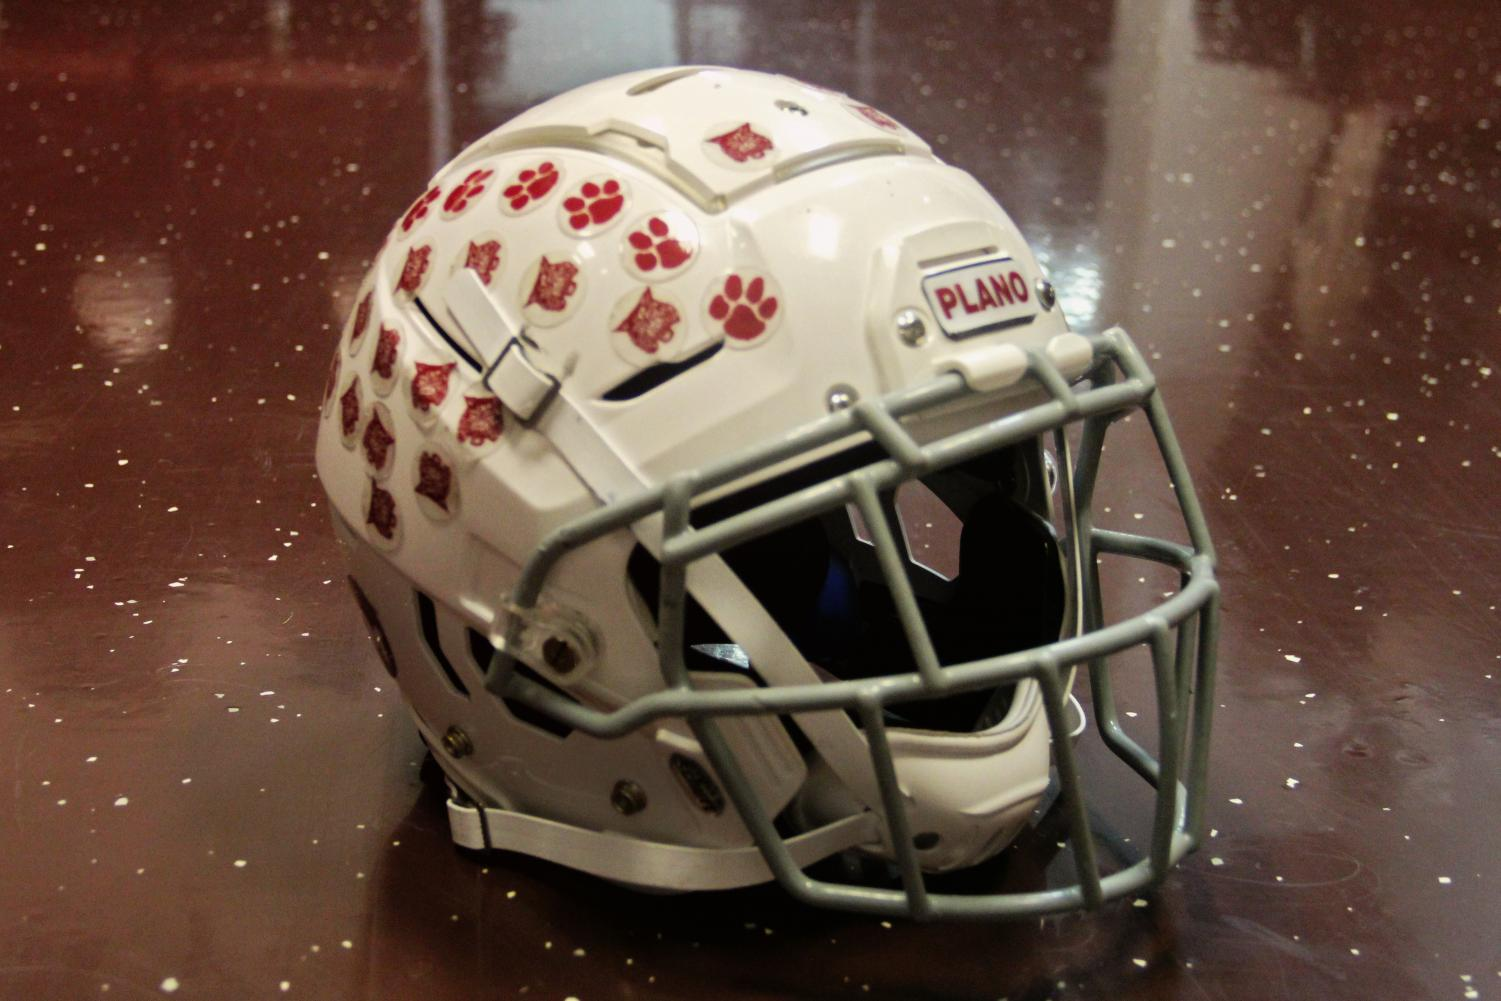 New helmet rule affects high school football